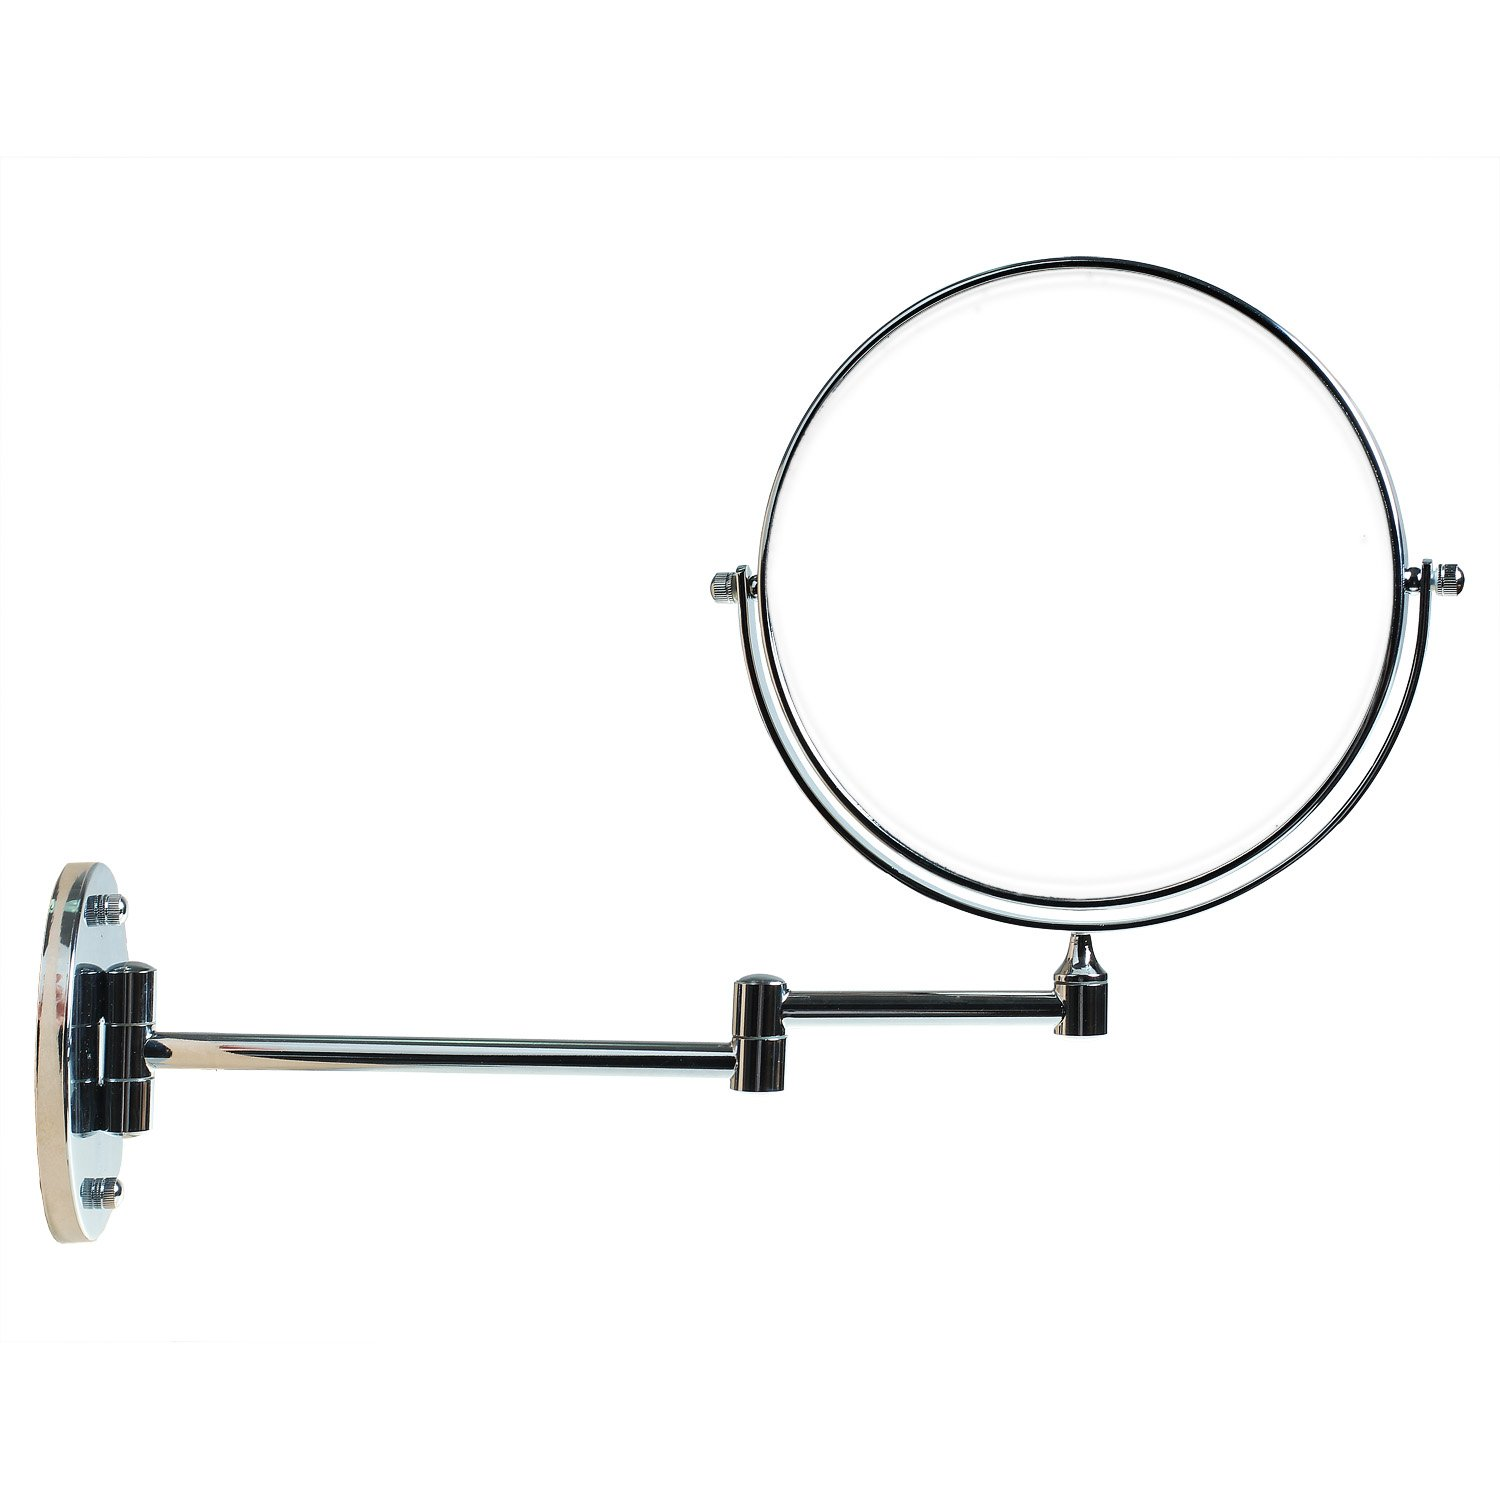 TUKA Wall-Mounted Vanity Mirror 7x Zoom, 8 Inch Foldable Make Up Mirror with or Without Drilling, Two-Sided Bathroom Wall Mount Cosmetic Mirror Shaving Mirror Chrome, x7 Magnification TKD3107-7x TUKAI